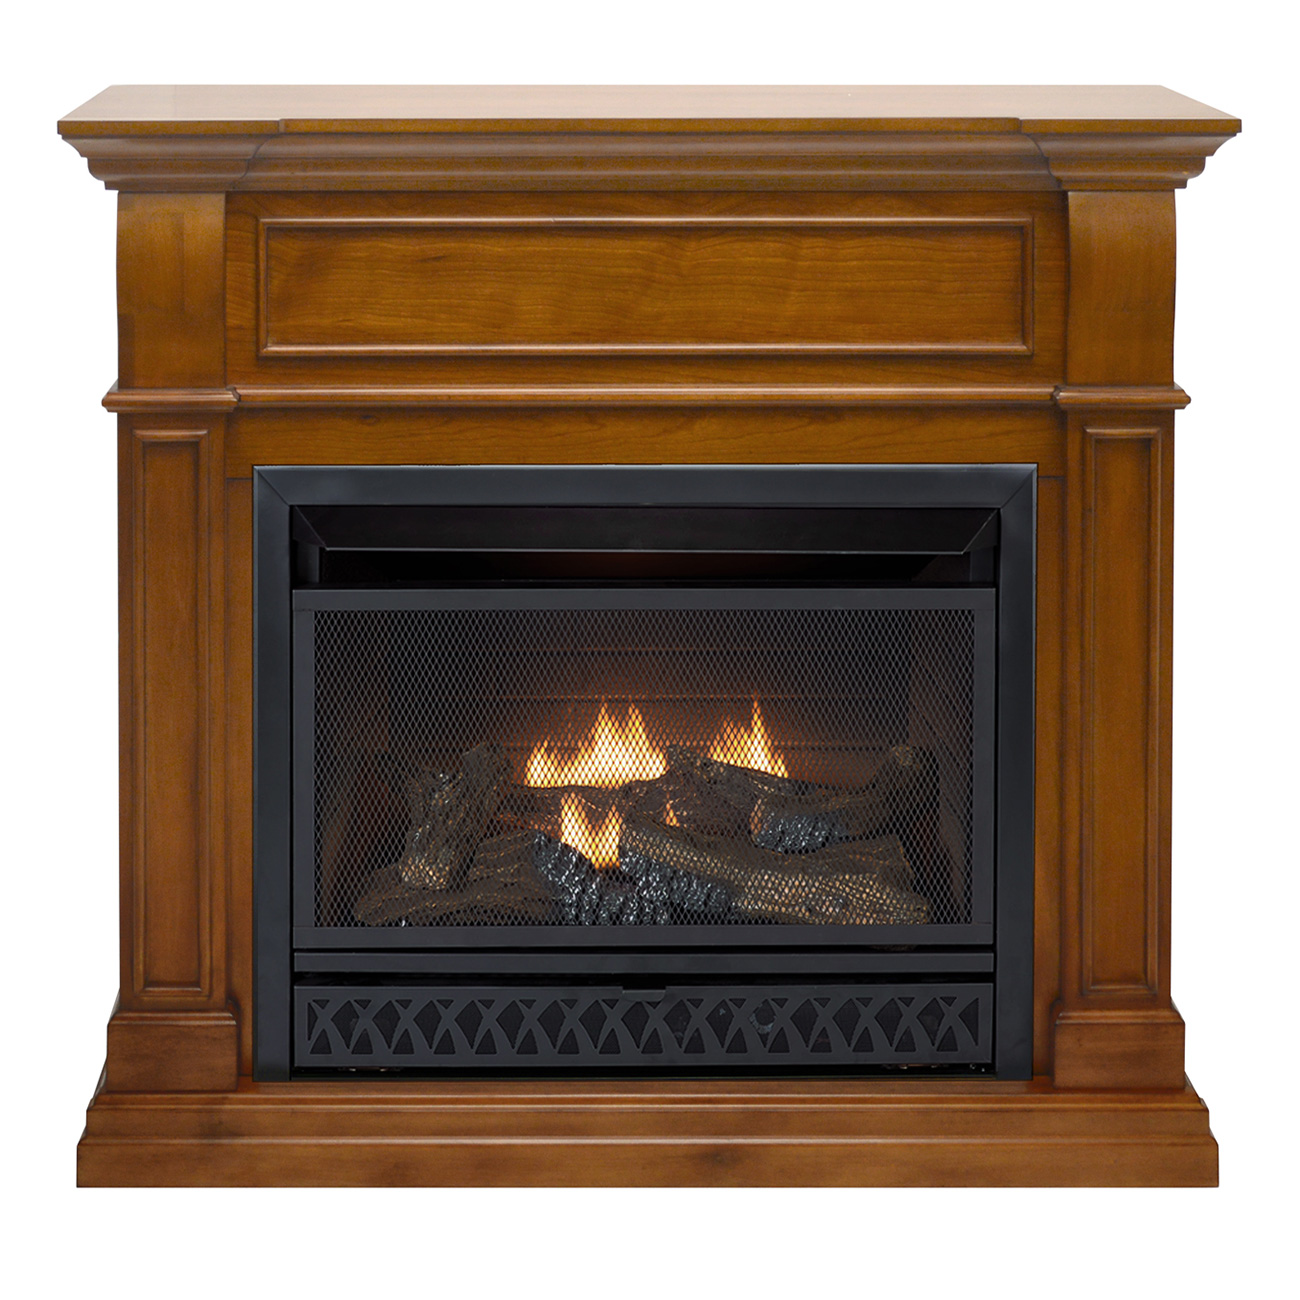 Ventless Fireplace: ProCom Ventless Fireplace Dual Fuel Fireplace, 26,000 BTU